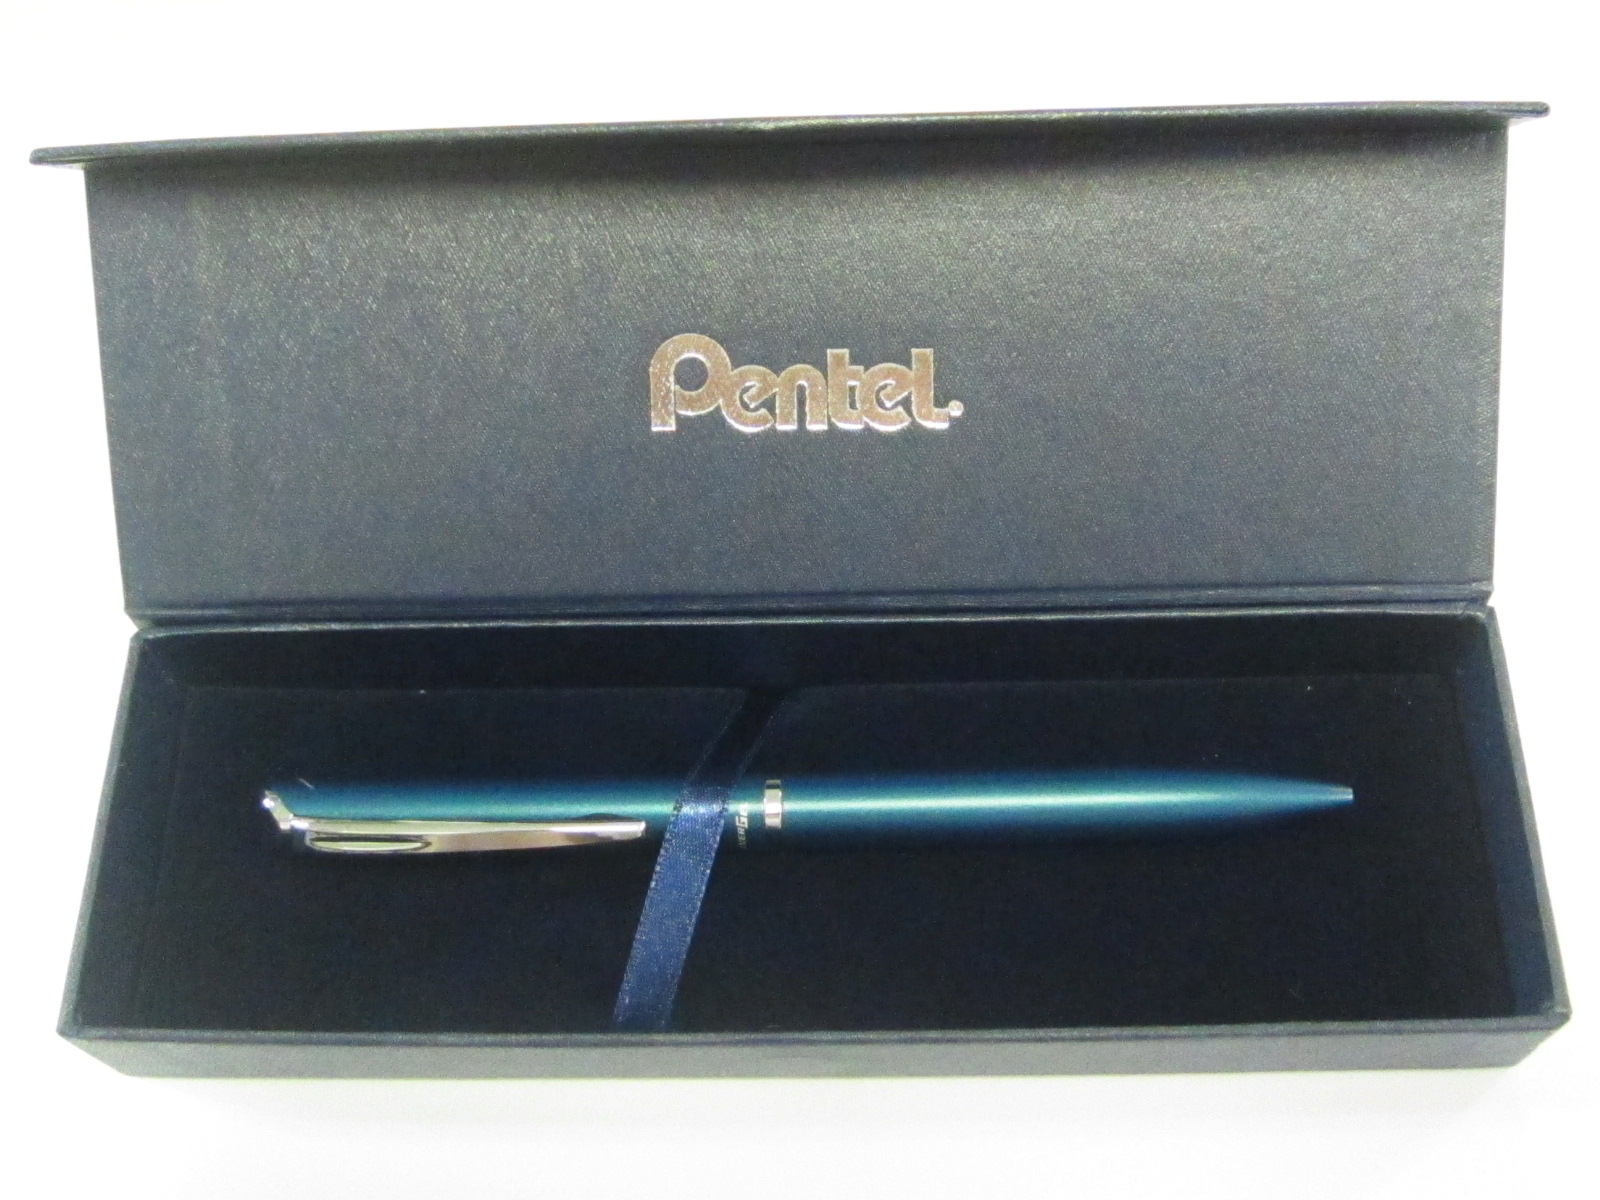 PENTEL PHILOGRAPHY PEN TEAL GIFT BOX